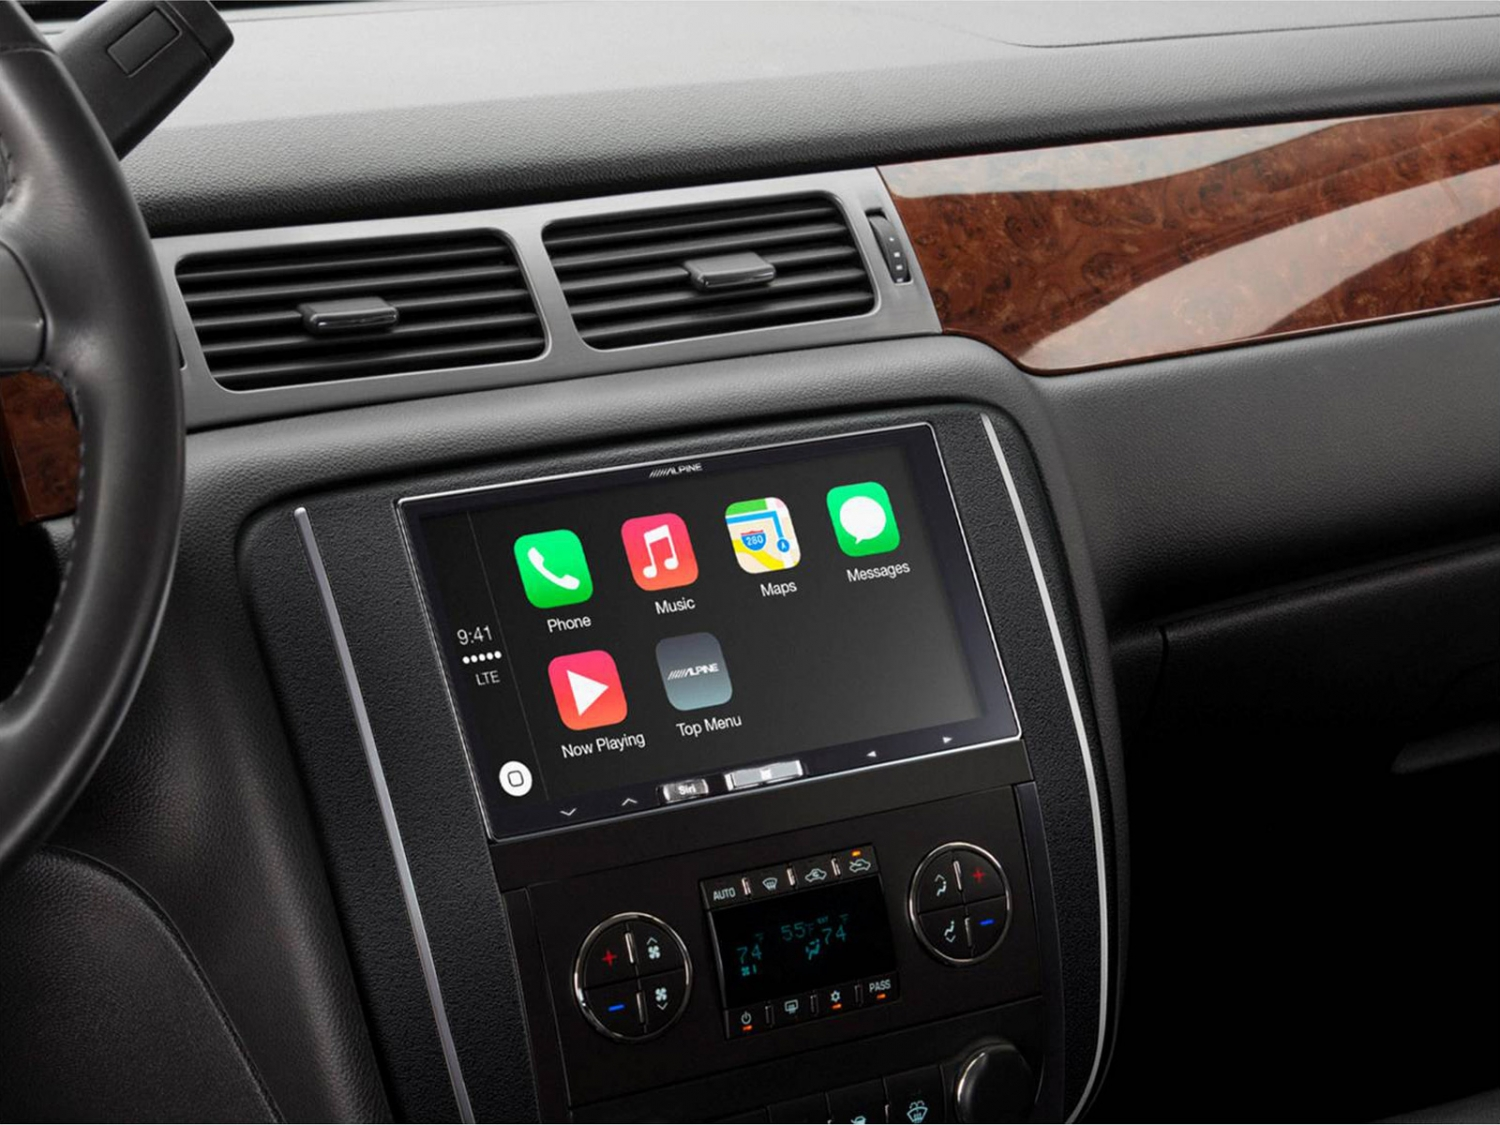 alpine ilx 700 2 din apple carplay 7 2din autoradio. Black Bedroom Furniture Sets. Home Design Ideas